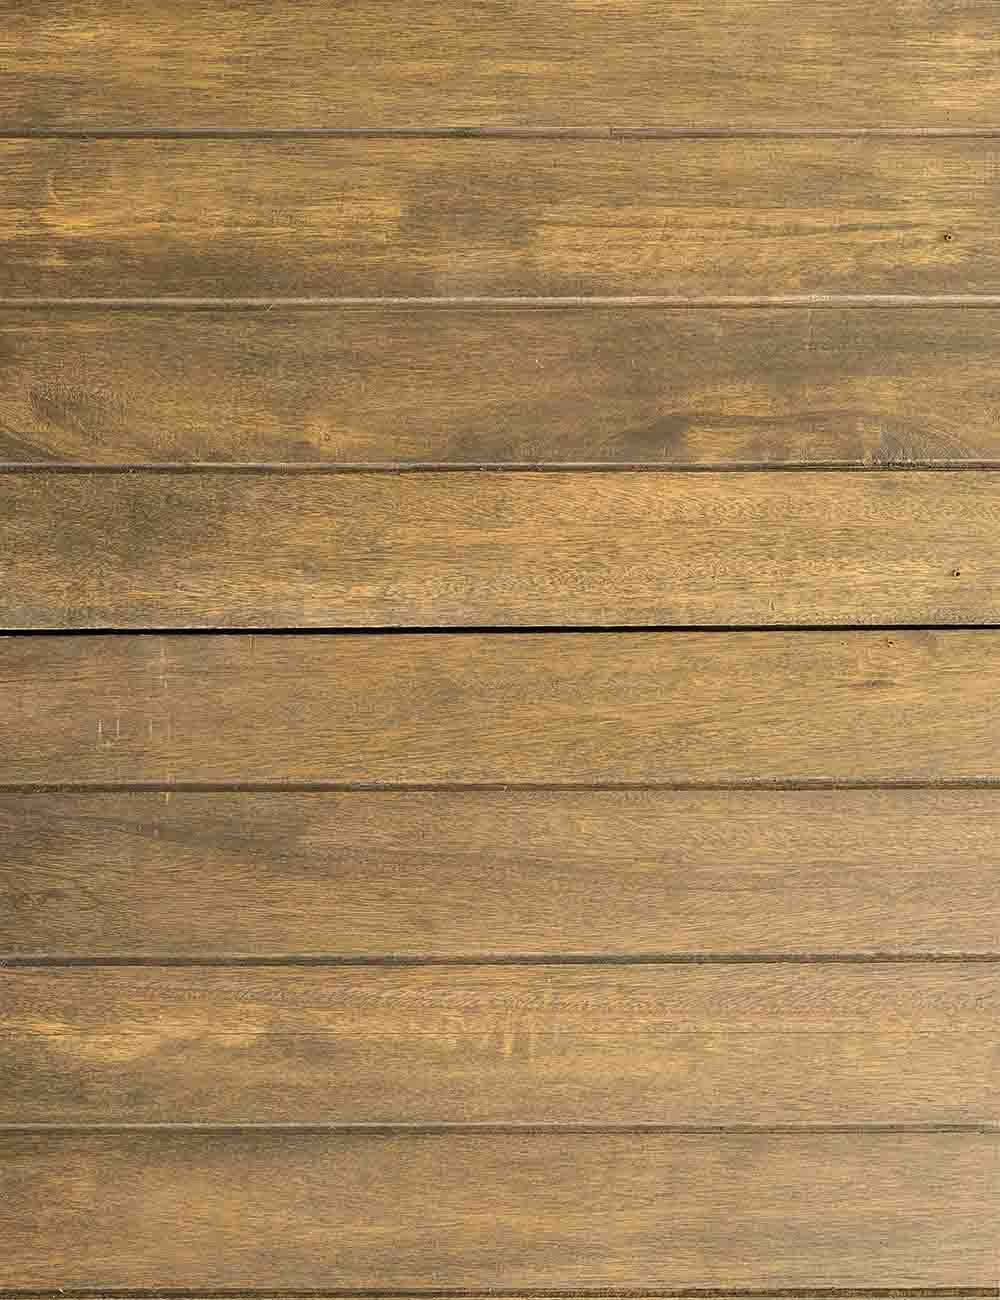 Brown Wood Floor Mat Or Wall Texture Photography Backdrop - Shop Backdrop